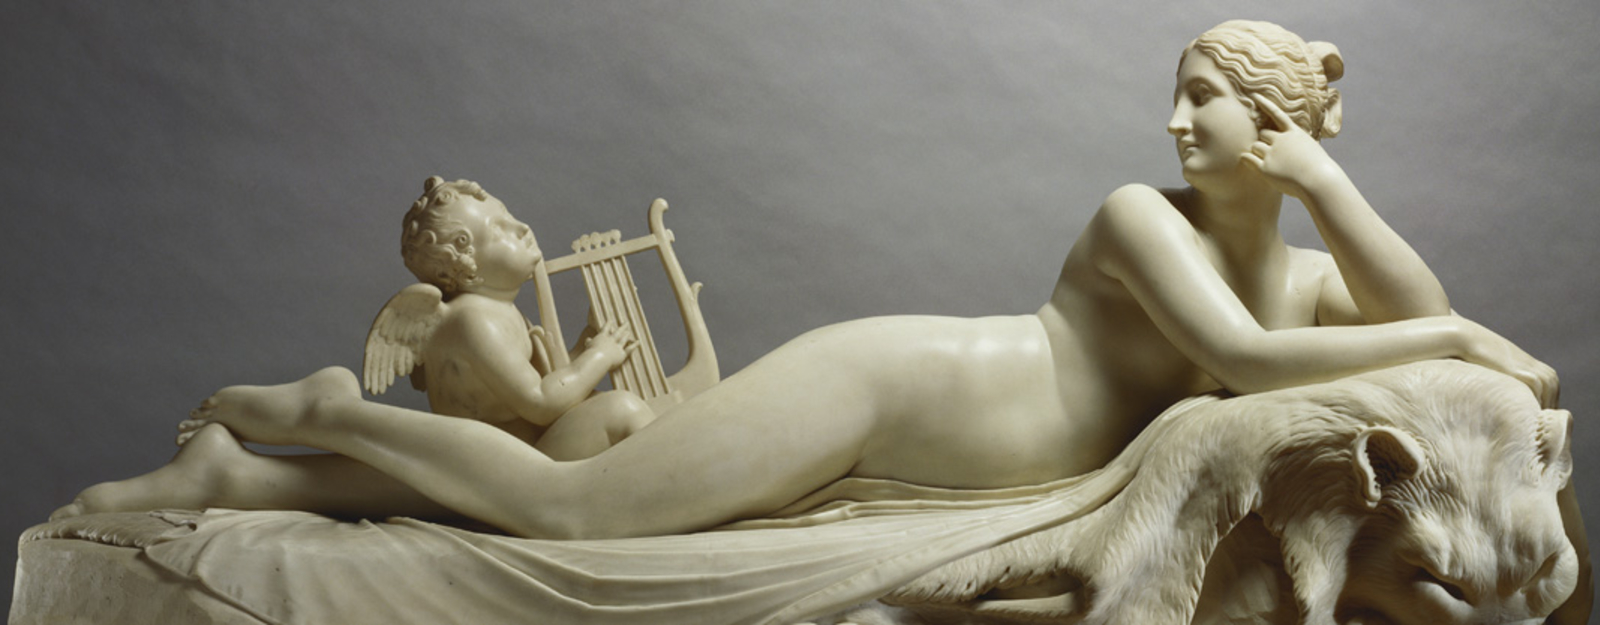 Nymph reclining with a nymph playing a lyre